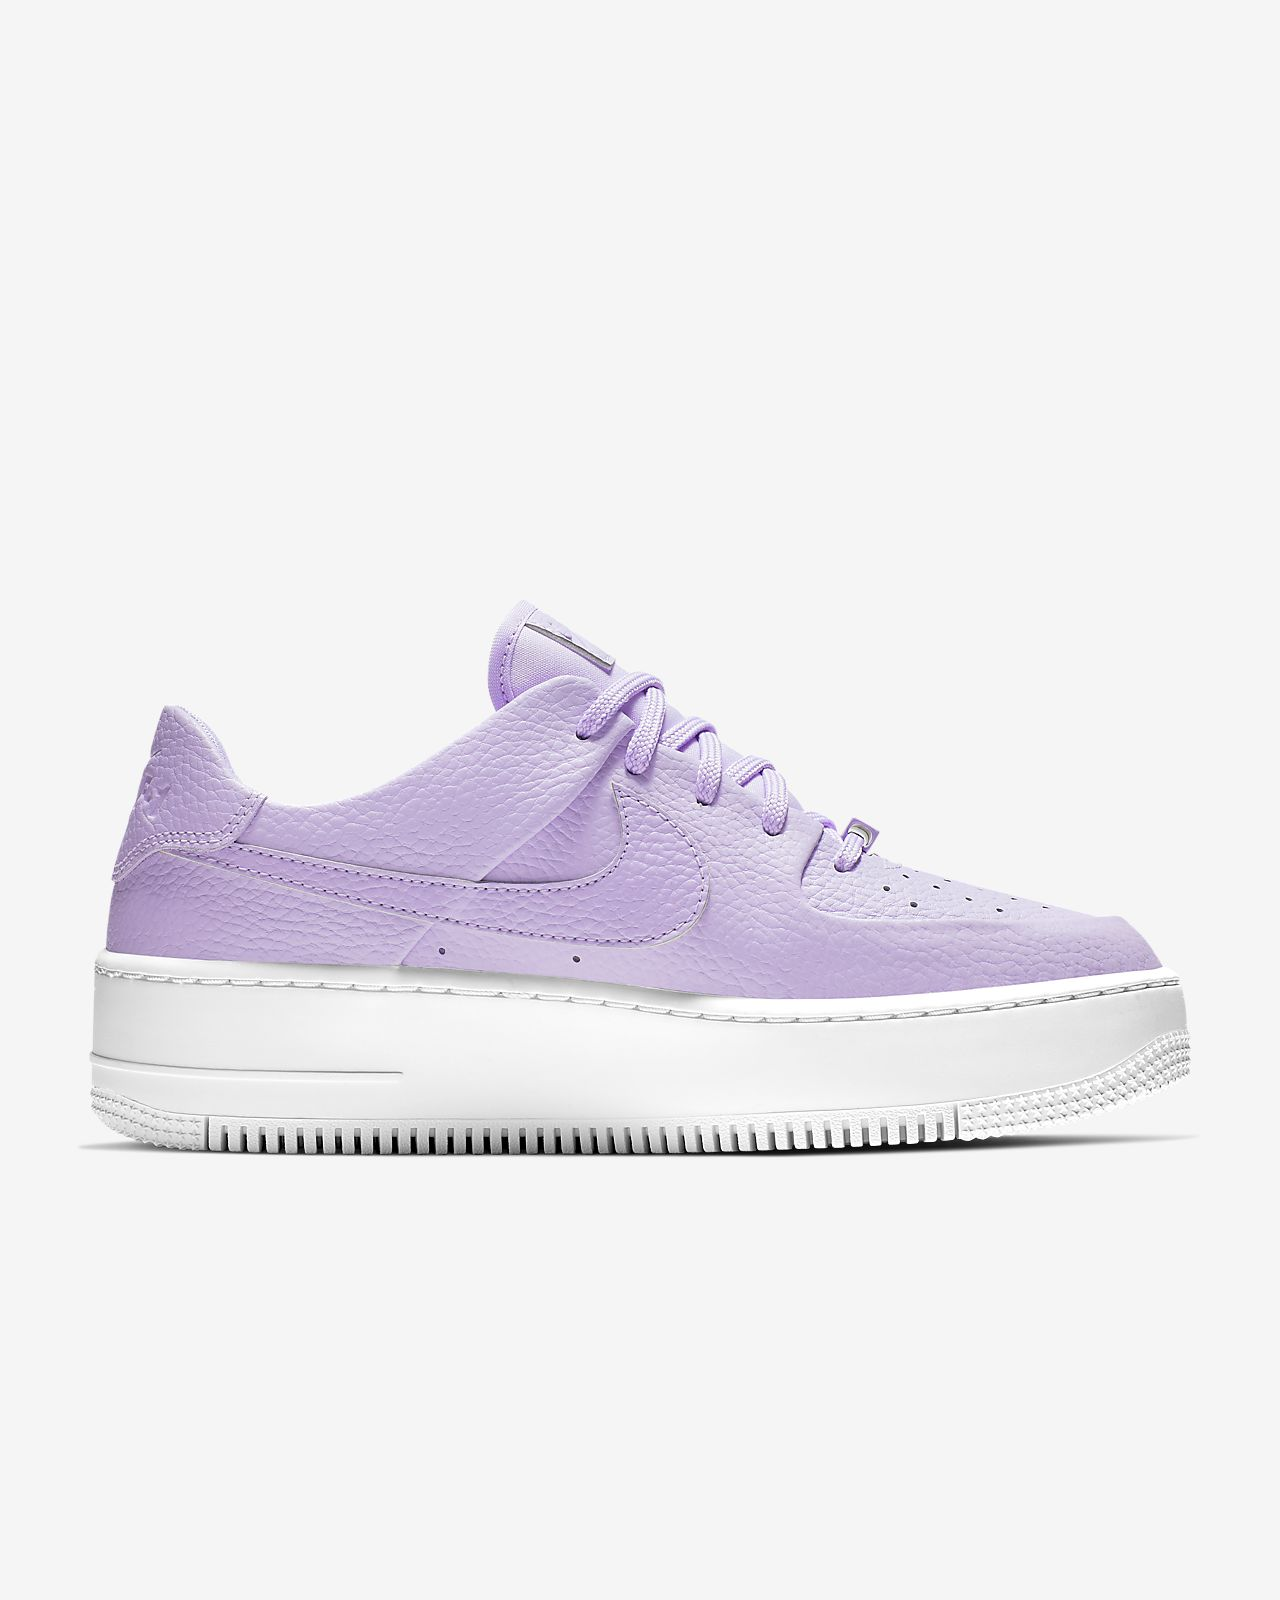 official photos a6d82 42114 ... Chaussure Nike Air Force 1 Sage Low pour Femme